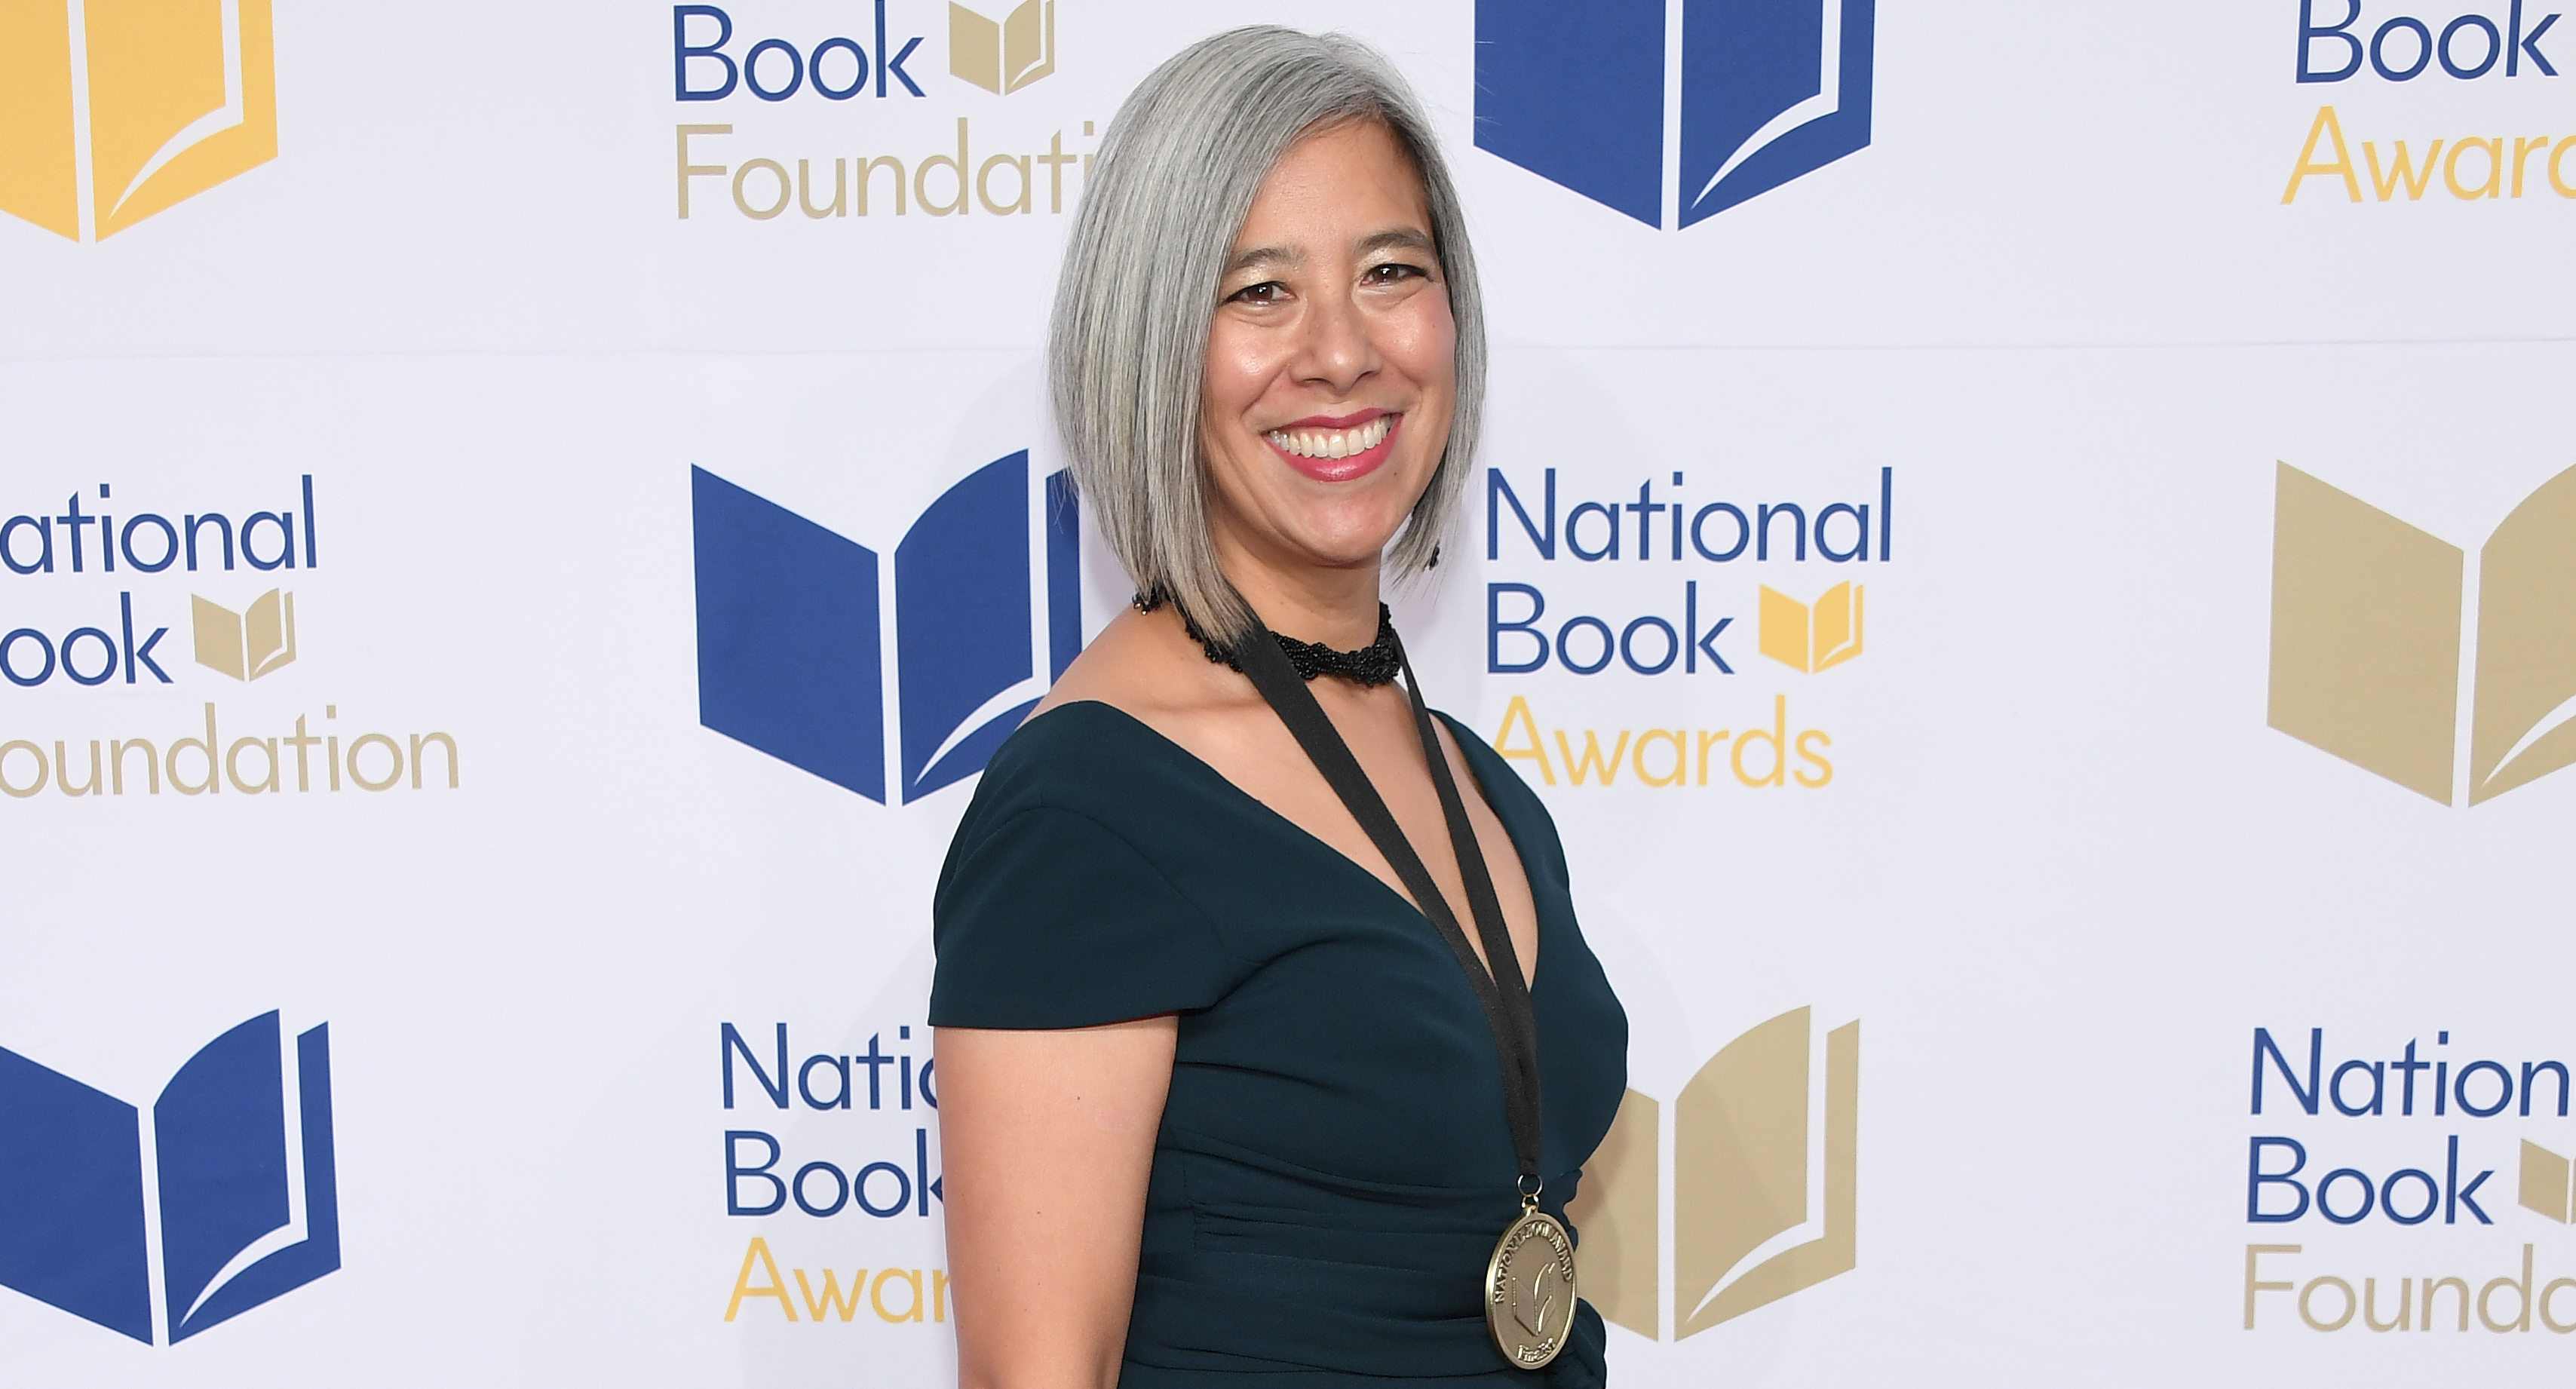 National Book Awards To Be Held Online